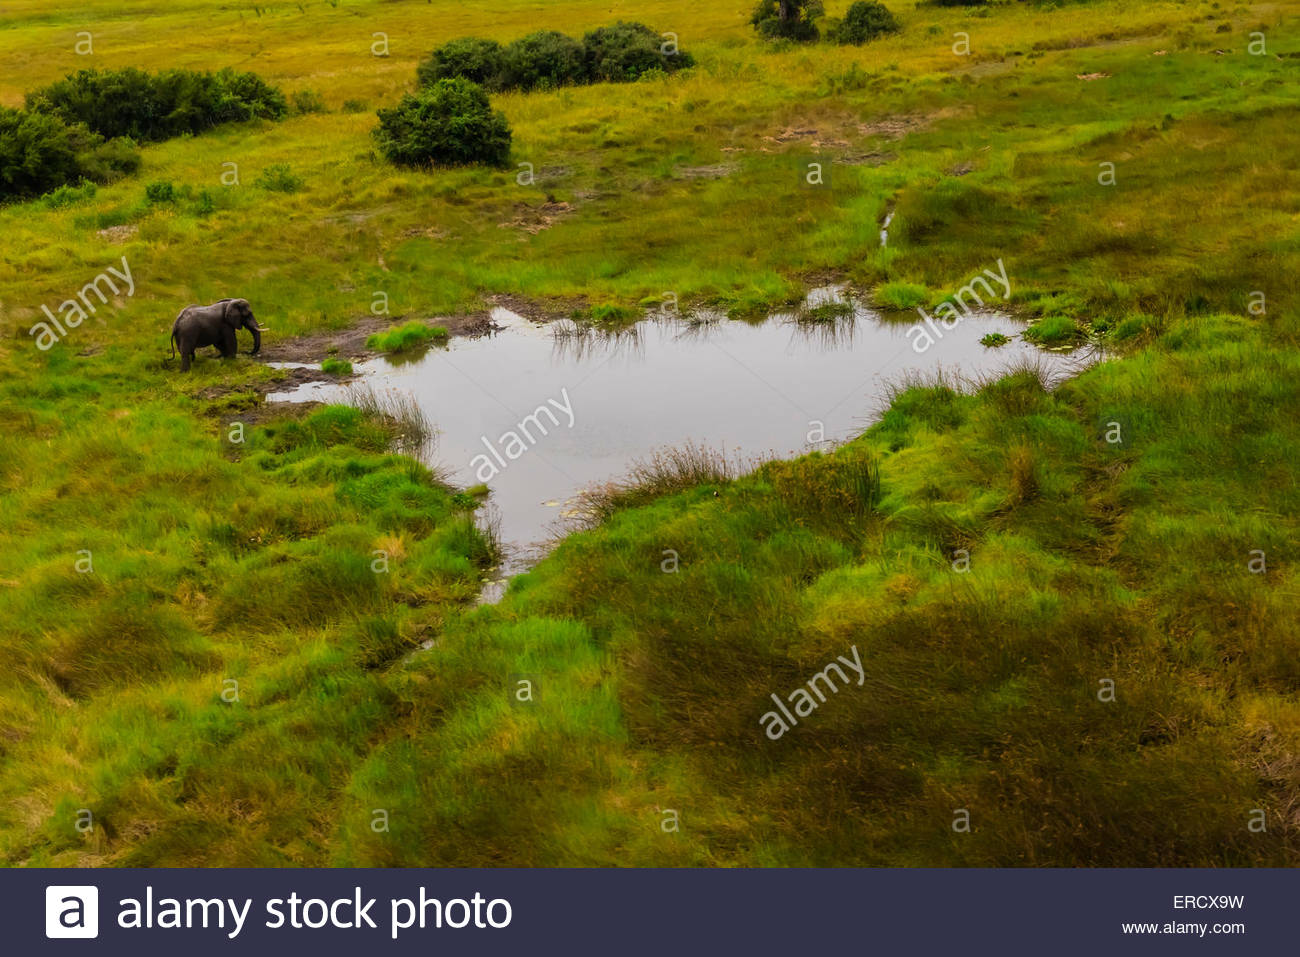 Aerial view of an African elephant at a watering hole, Okavango Delta, Botswana. Stock Photo